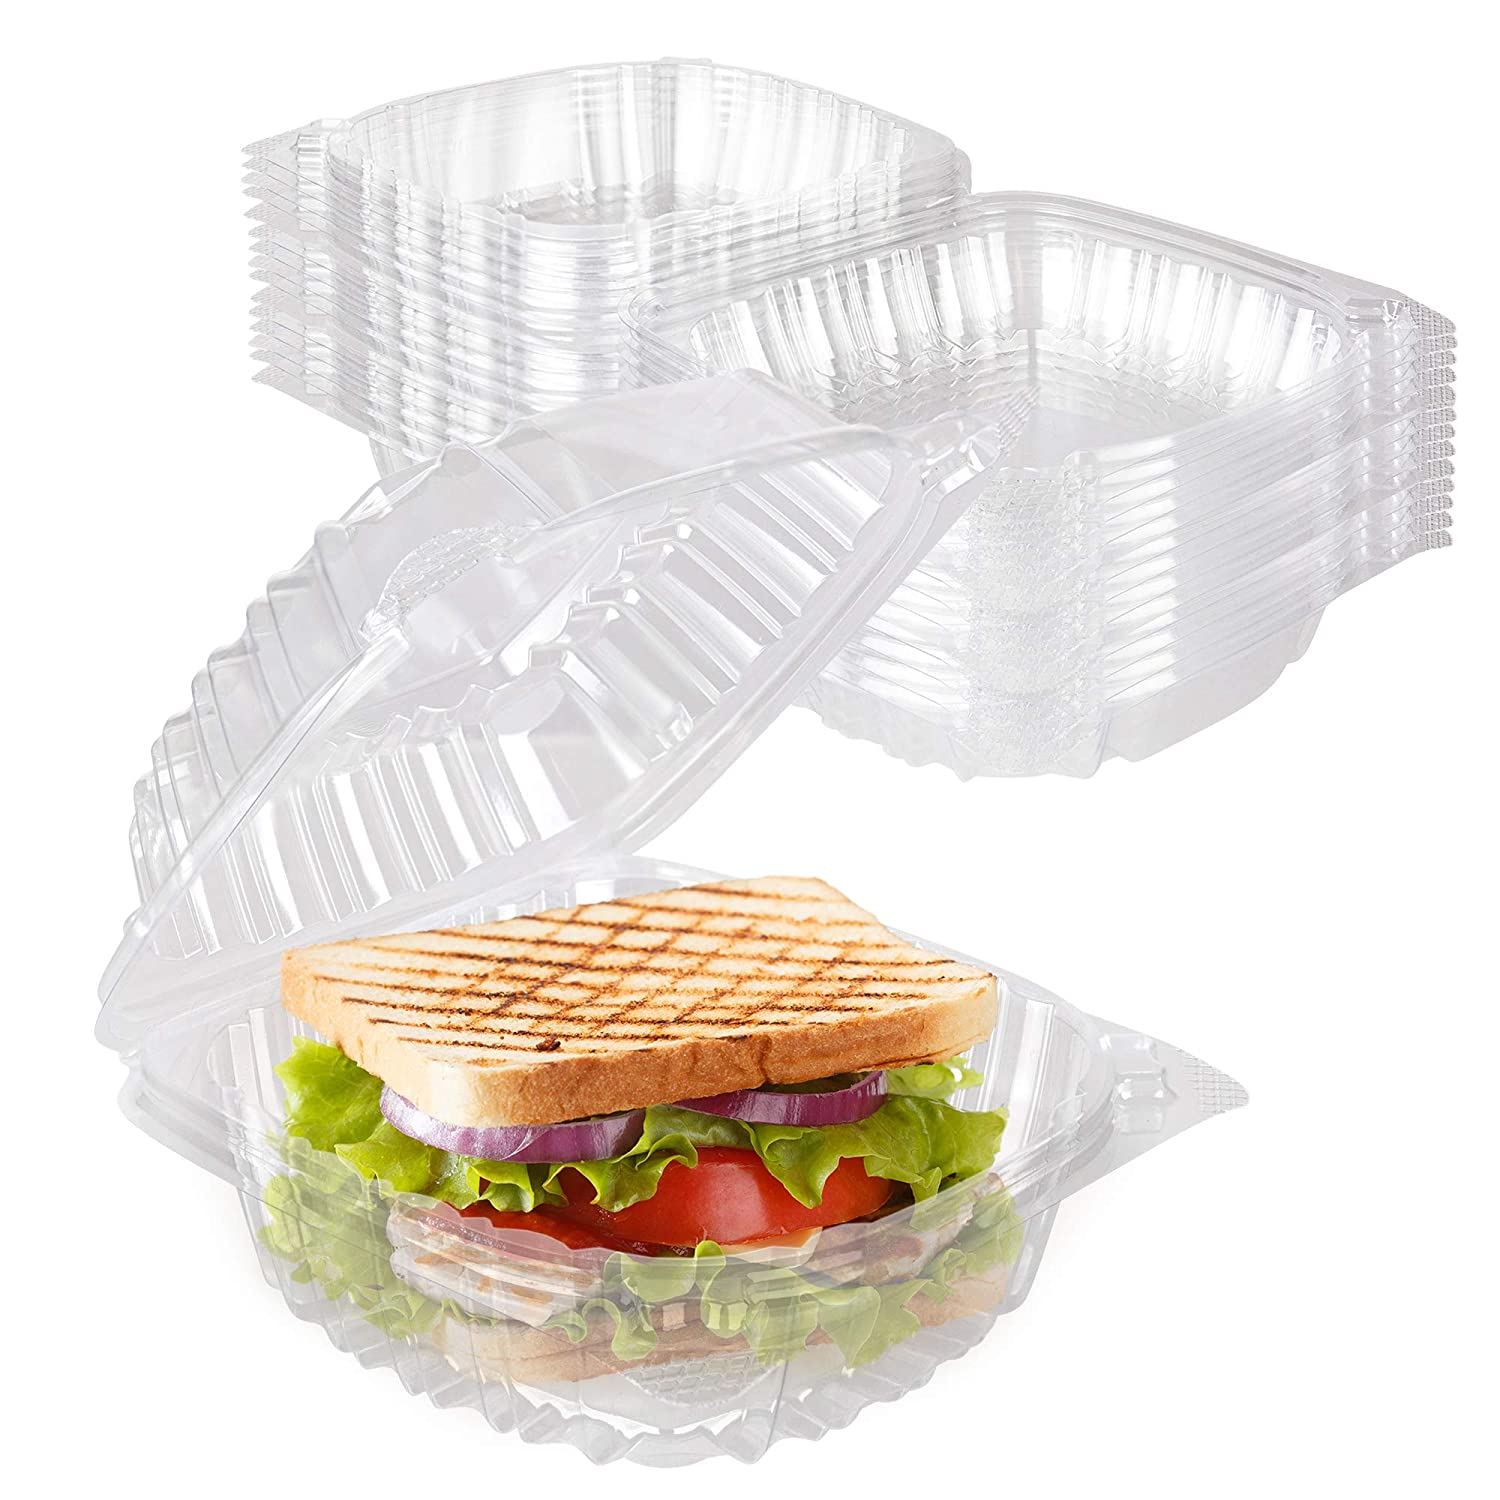 Stock Your Home Plastic 5 x 5 Inch Clamshell Takeout Tray (50 Count) - Dessert Containers - Plastic Hinged Food Container - Disposable Plastic Clamshell Food Containers for Salads, Pasta, Sandwiches